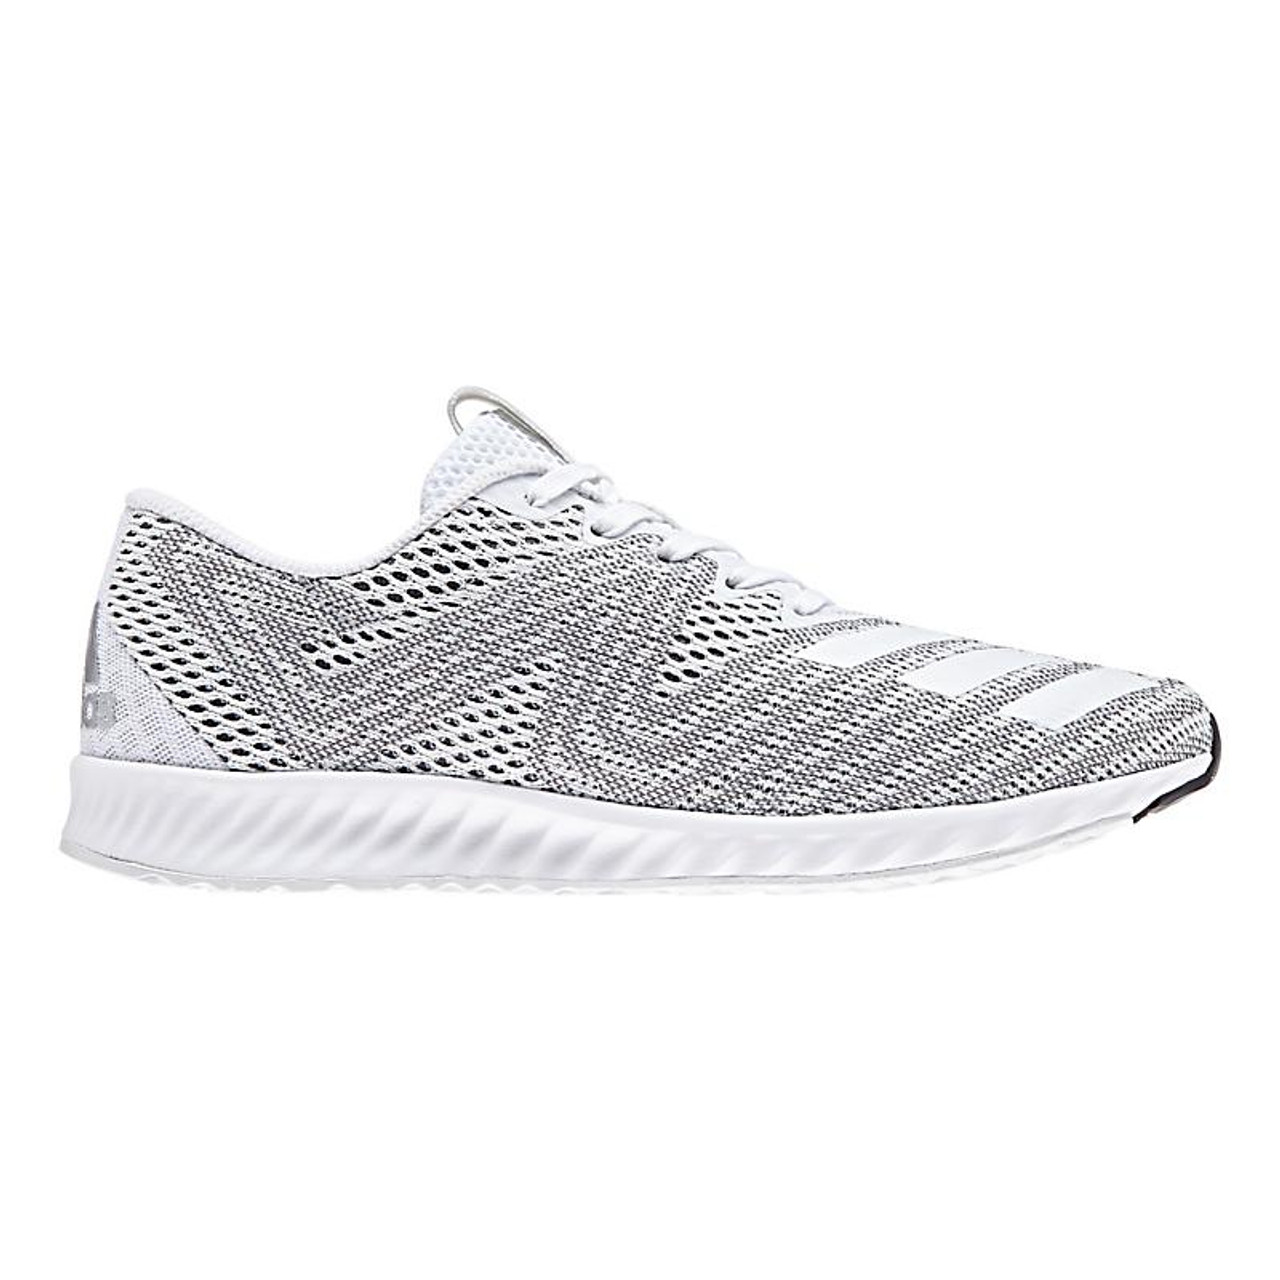 on sale 2e078 53033 Women's adidas AeroBounce PR